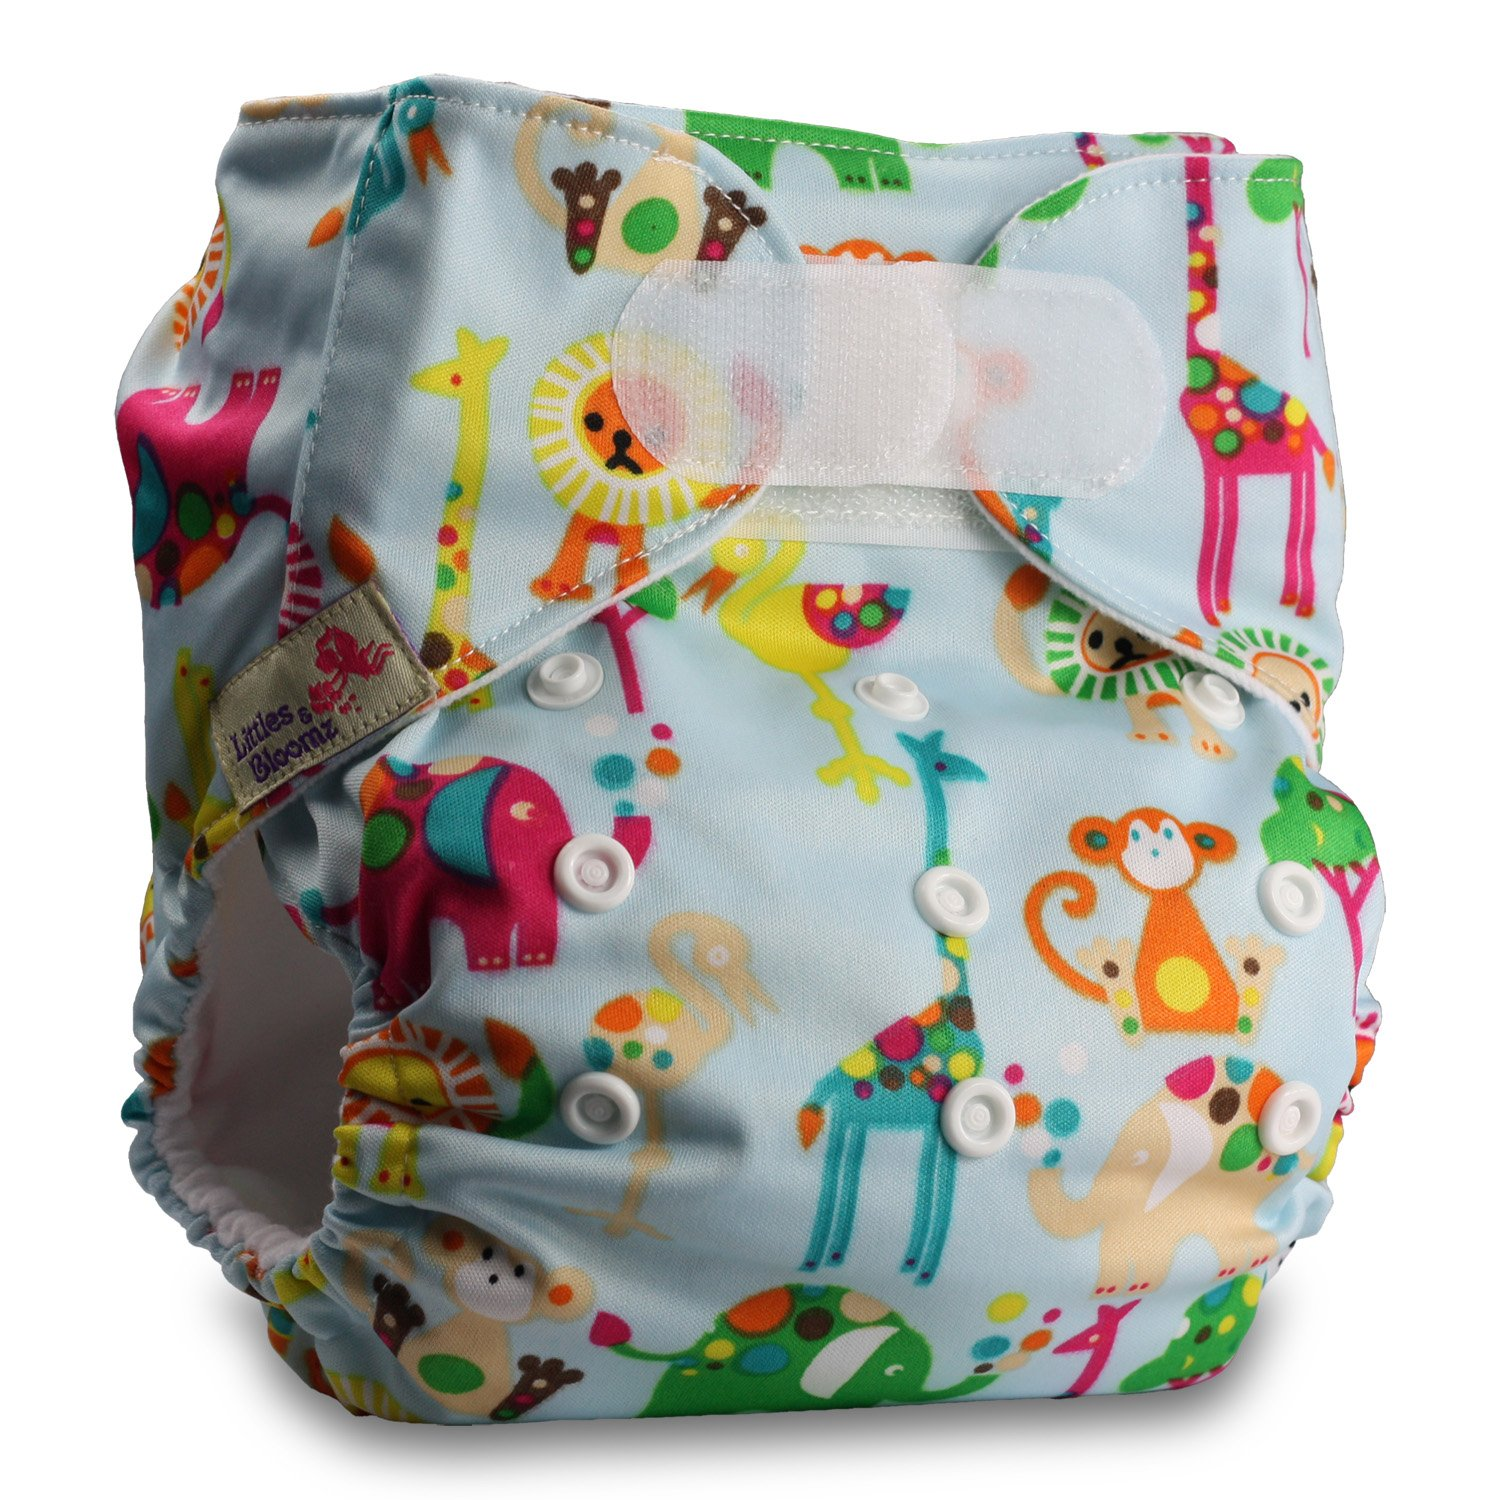 Reusable Pocket Cloth Nappy with 1 Bamboo Charcoal Insert Set of 1 Pattern 46 Littles /& Bloomz Fastener: Hook-Loop